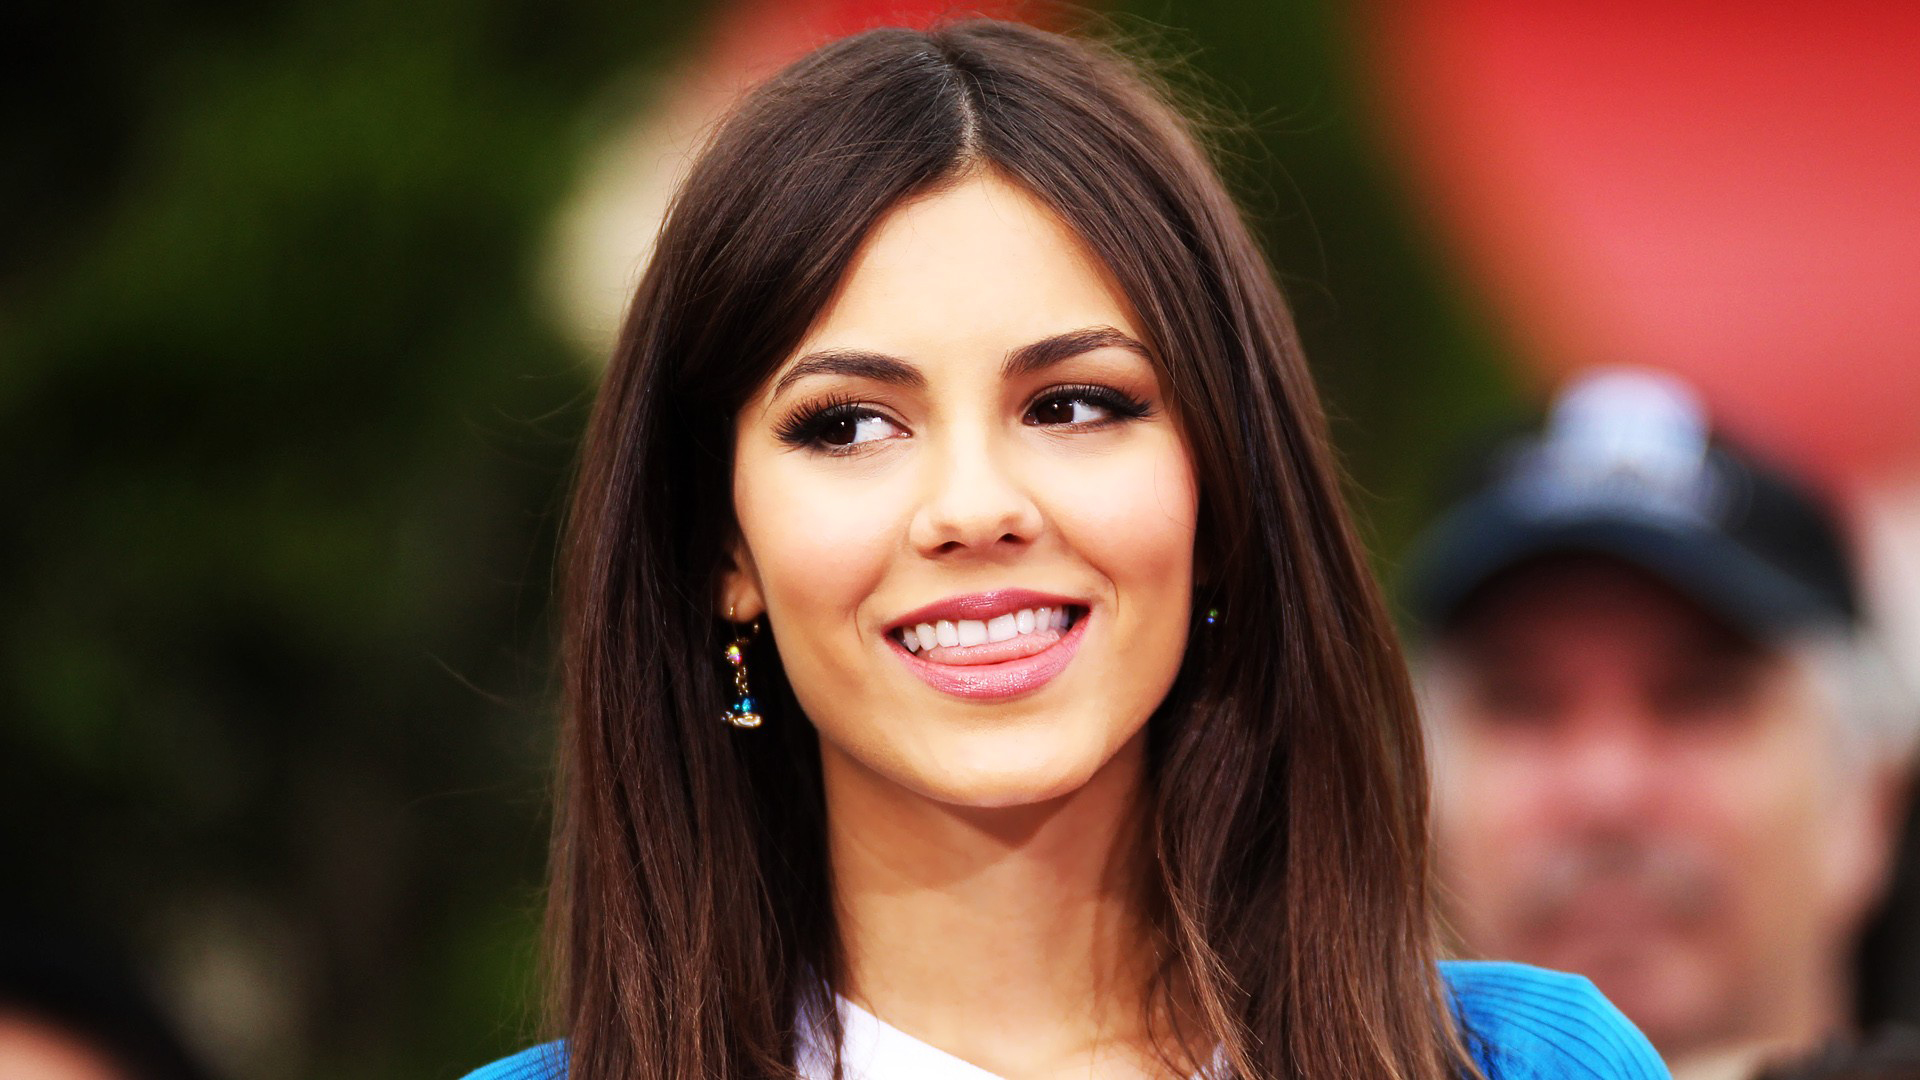 1920x1080 - Victoria Justice Wallpapers 25